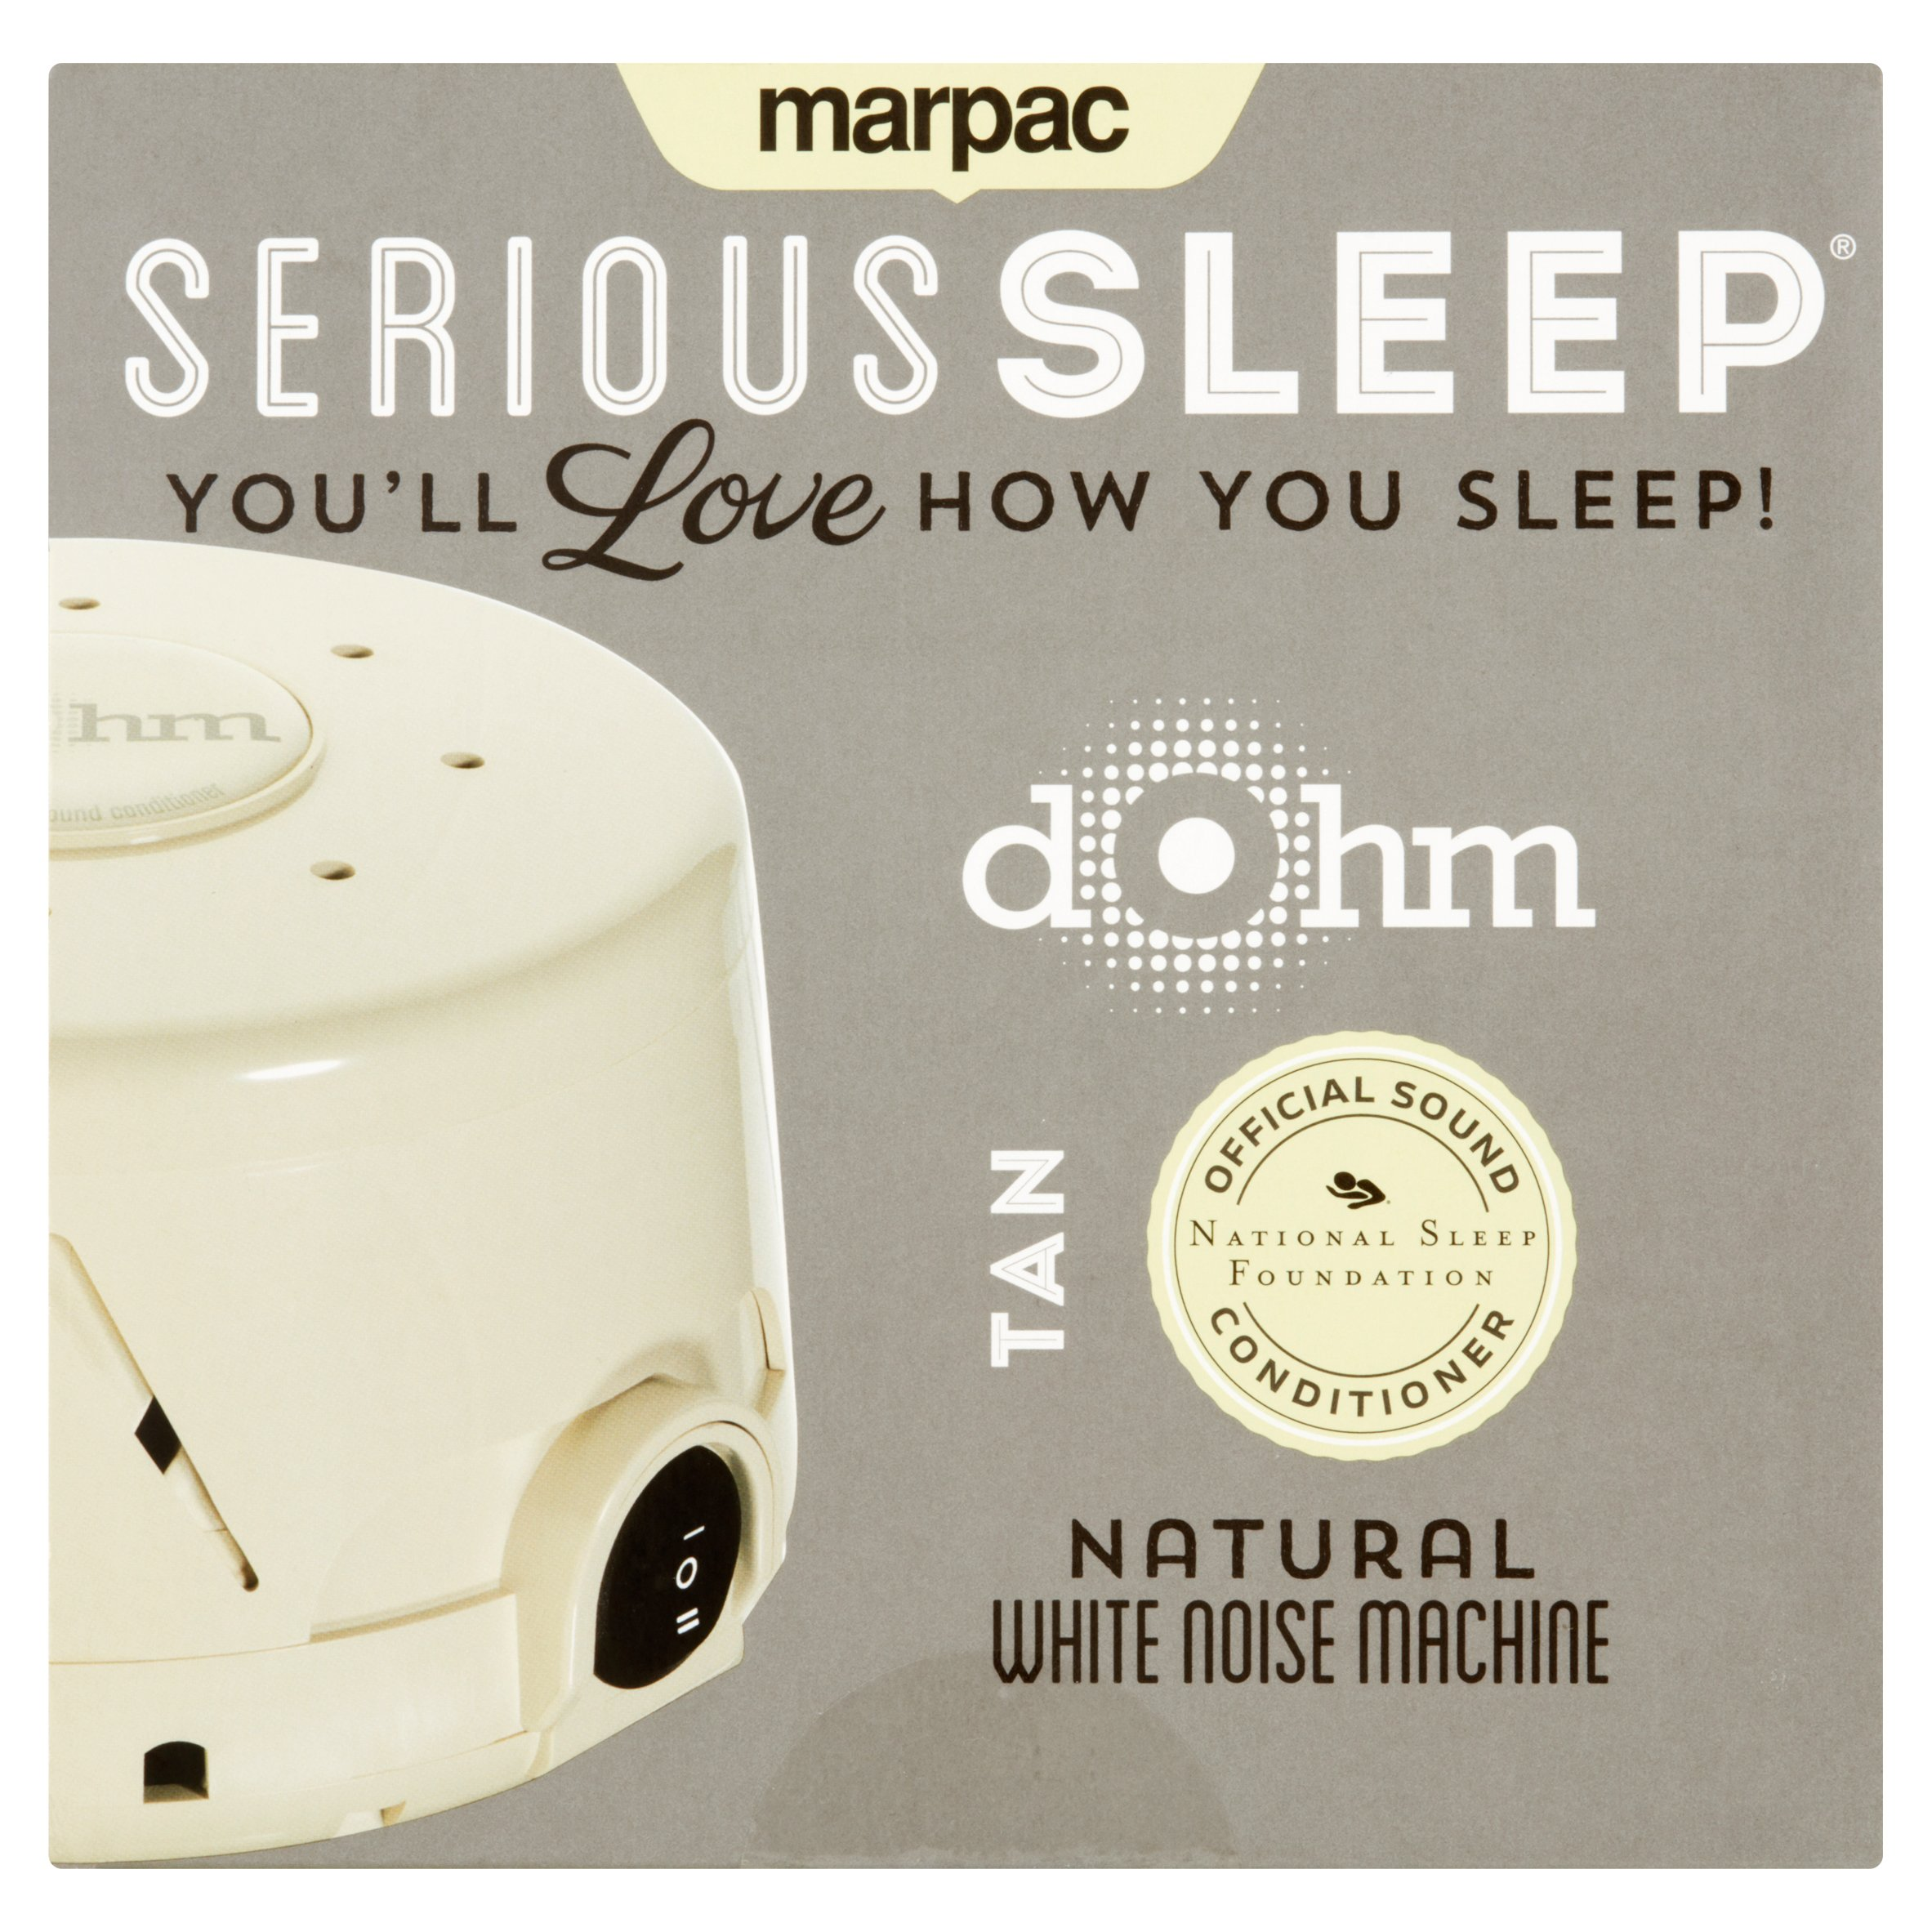 Marpac Serious Sleep Tan Natural Dohm White Noise Machine